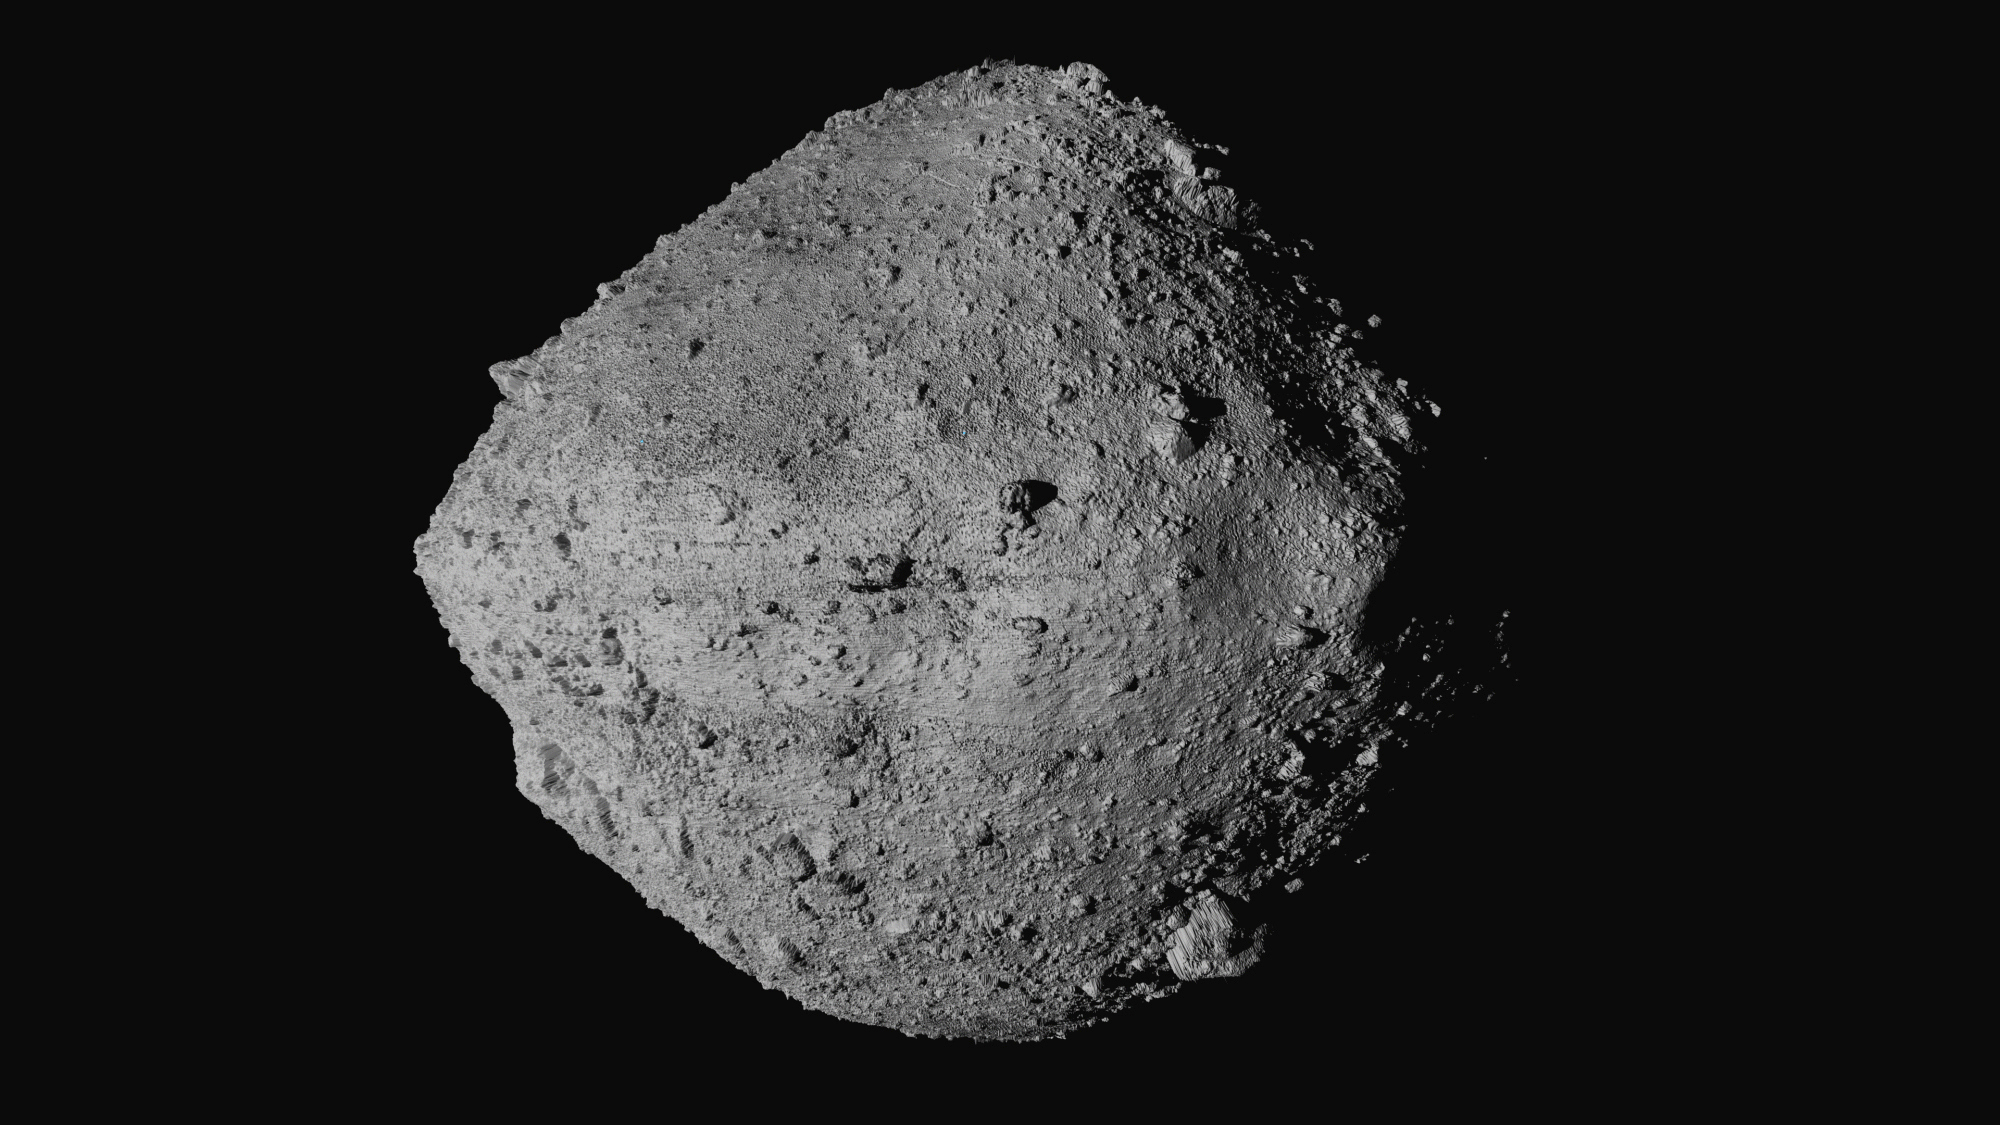 REx makes historic maneuver by successfully taking samples of asteroid Bennu